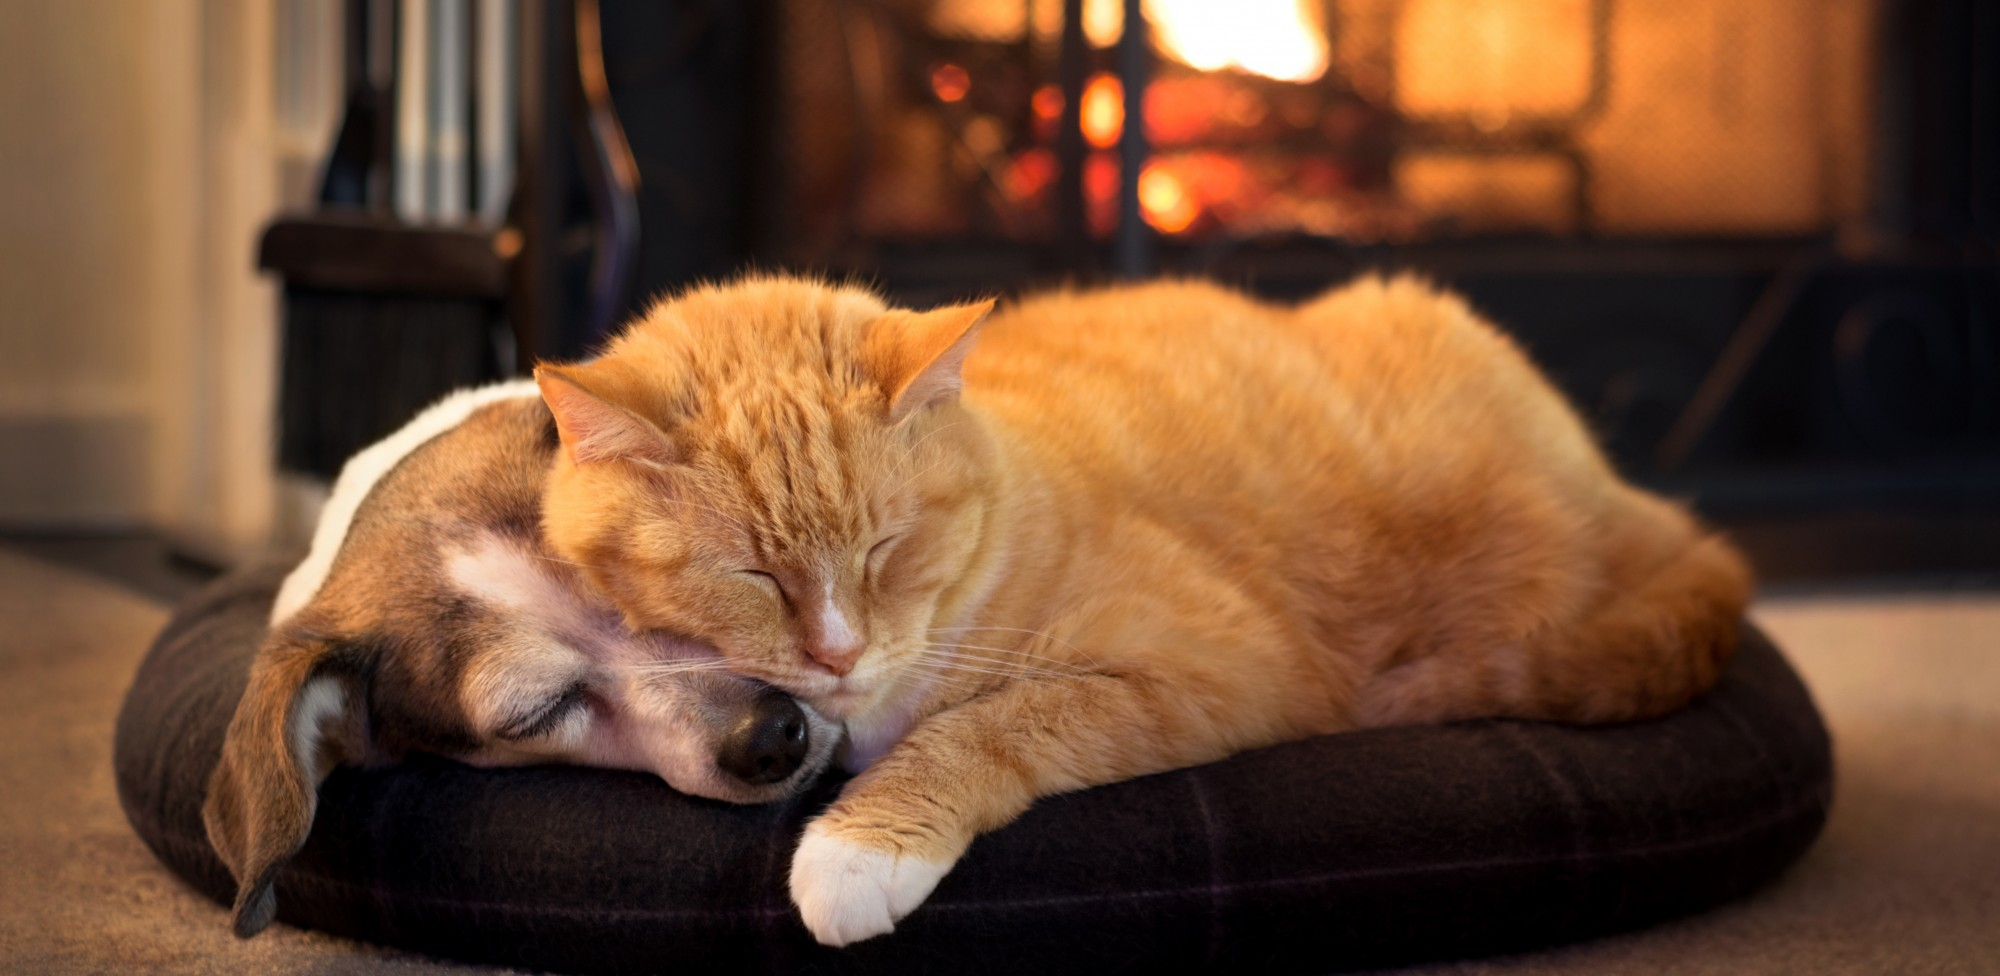 Dog and cat in front of fireplace